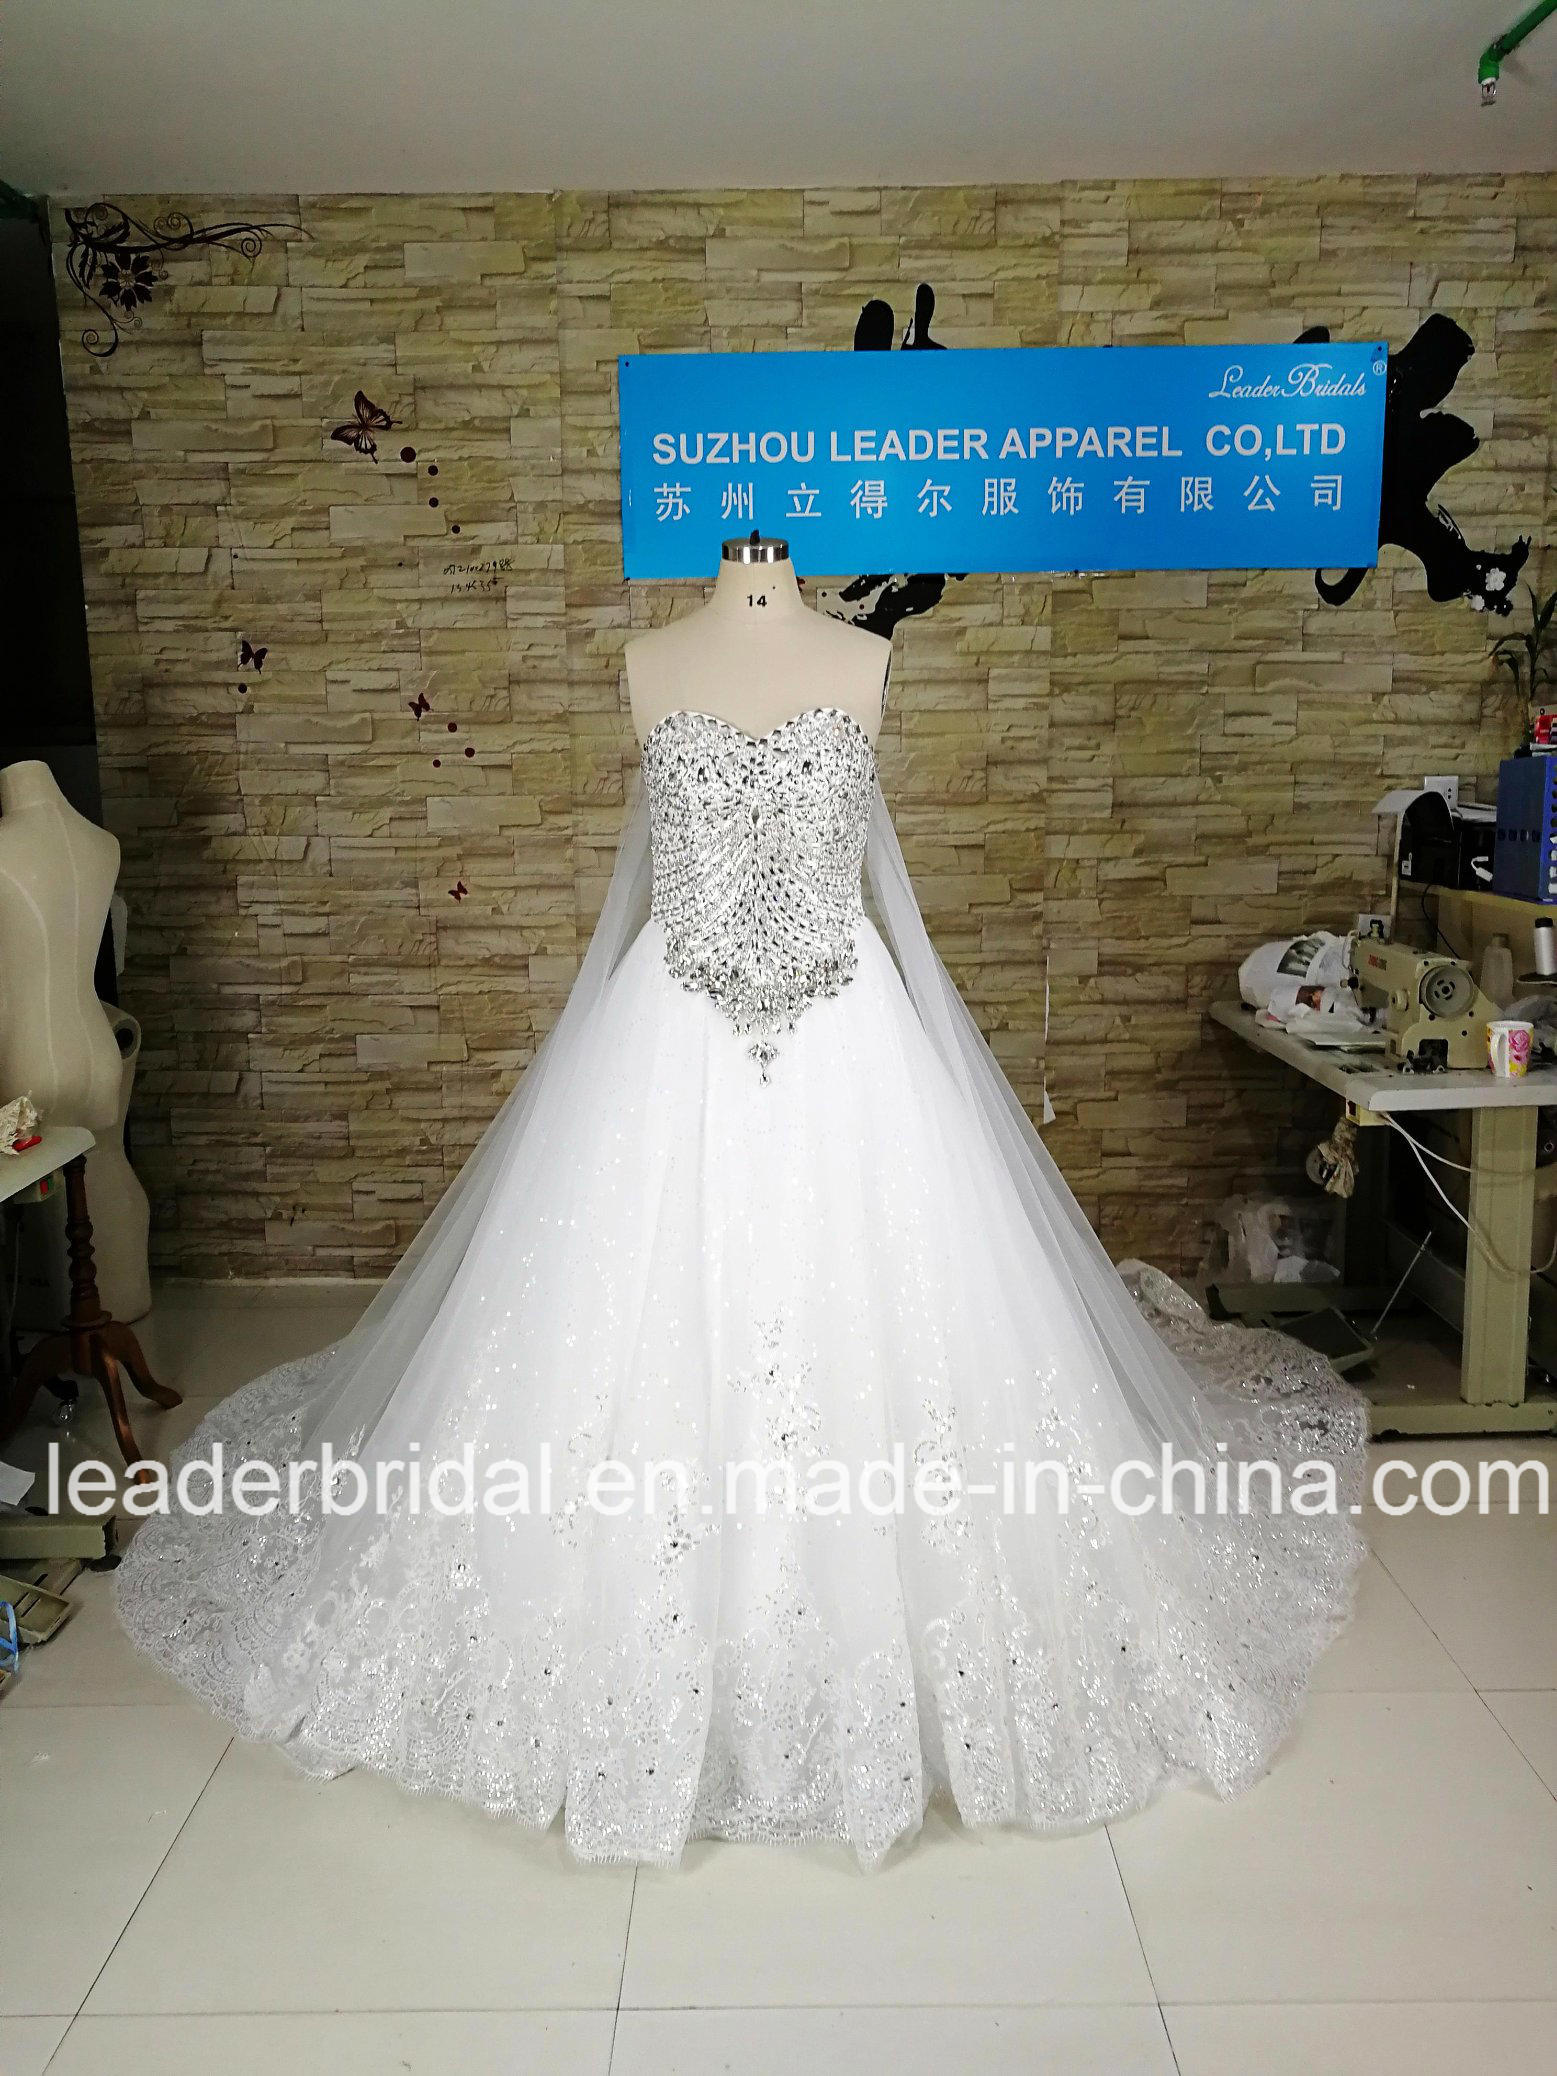 Lace Bridal Ball Gown Luxury Crystal New Wedding Dress 2017 H13361